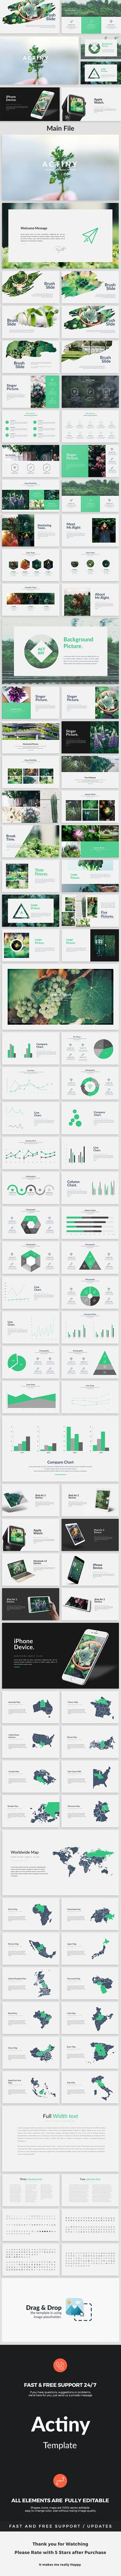 Actiny - Creative Powerpoint Template